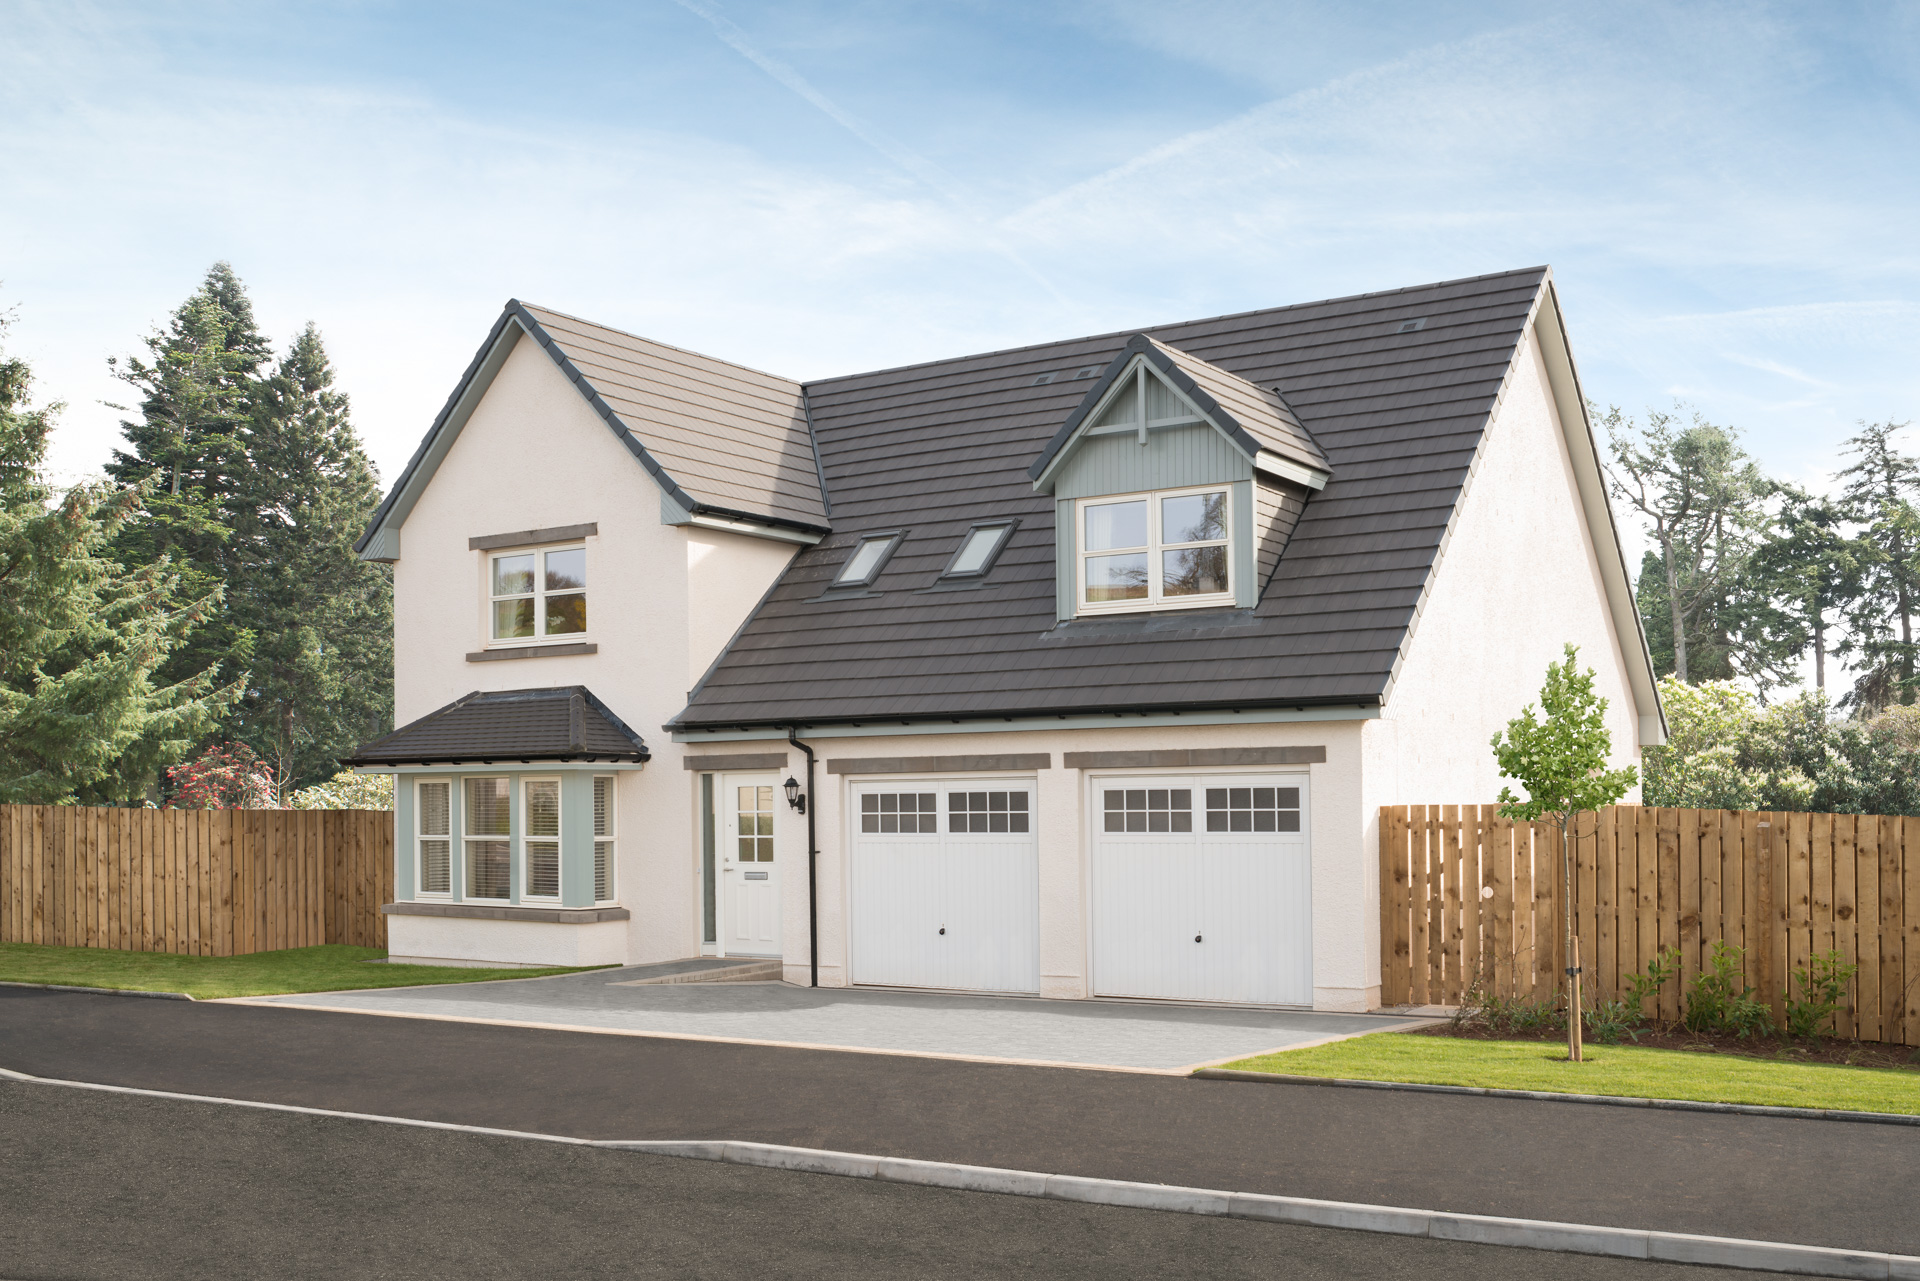 Plot 6 - The Marr - The Beeches